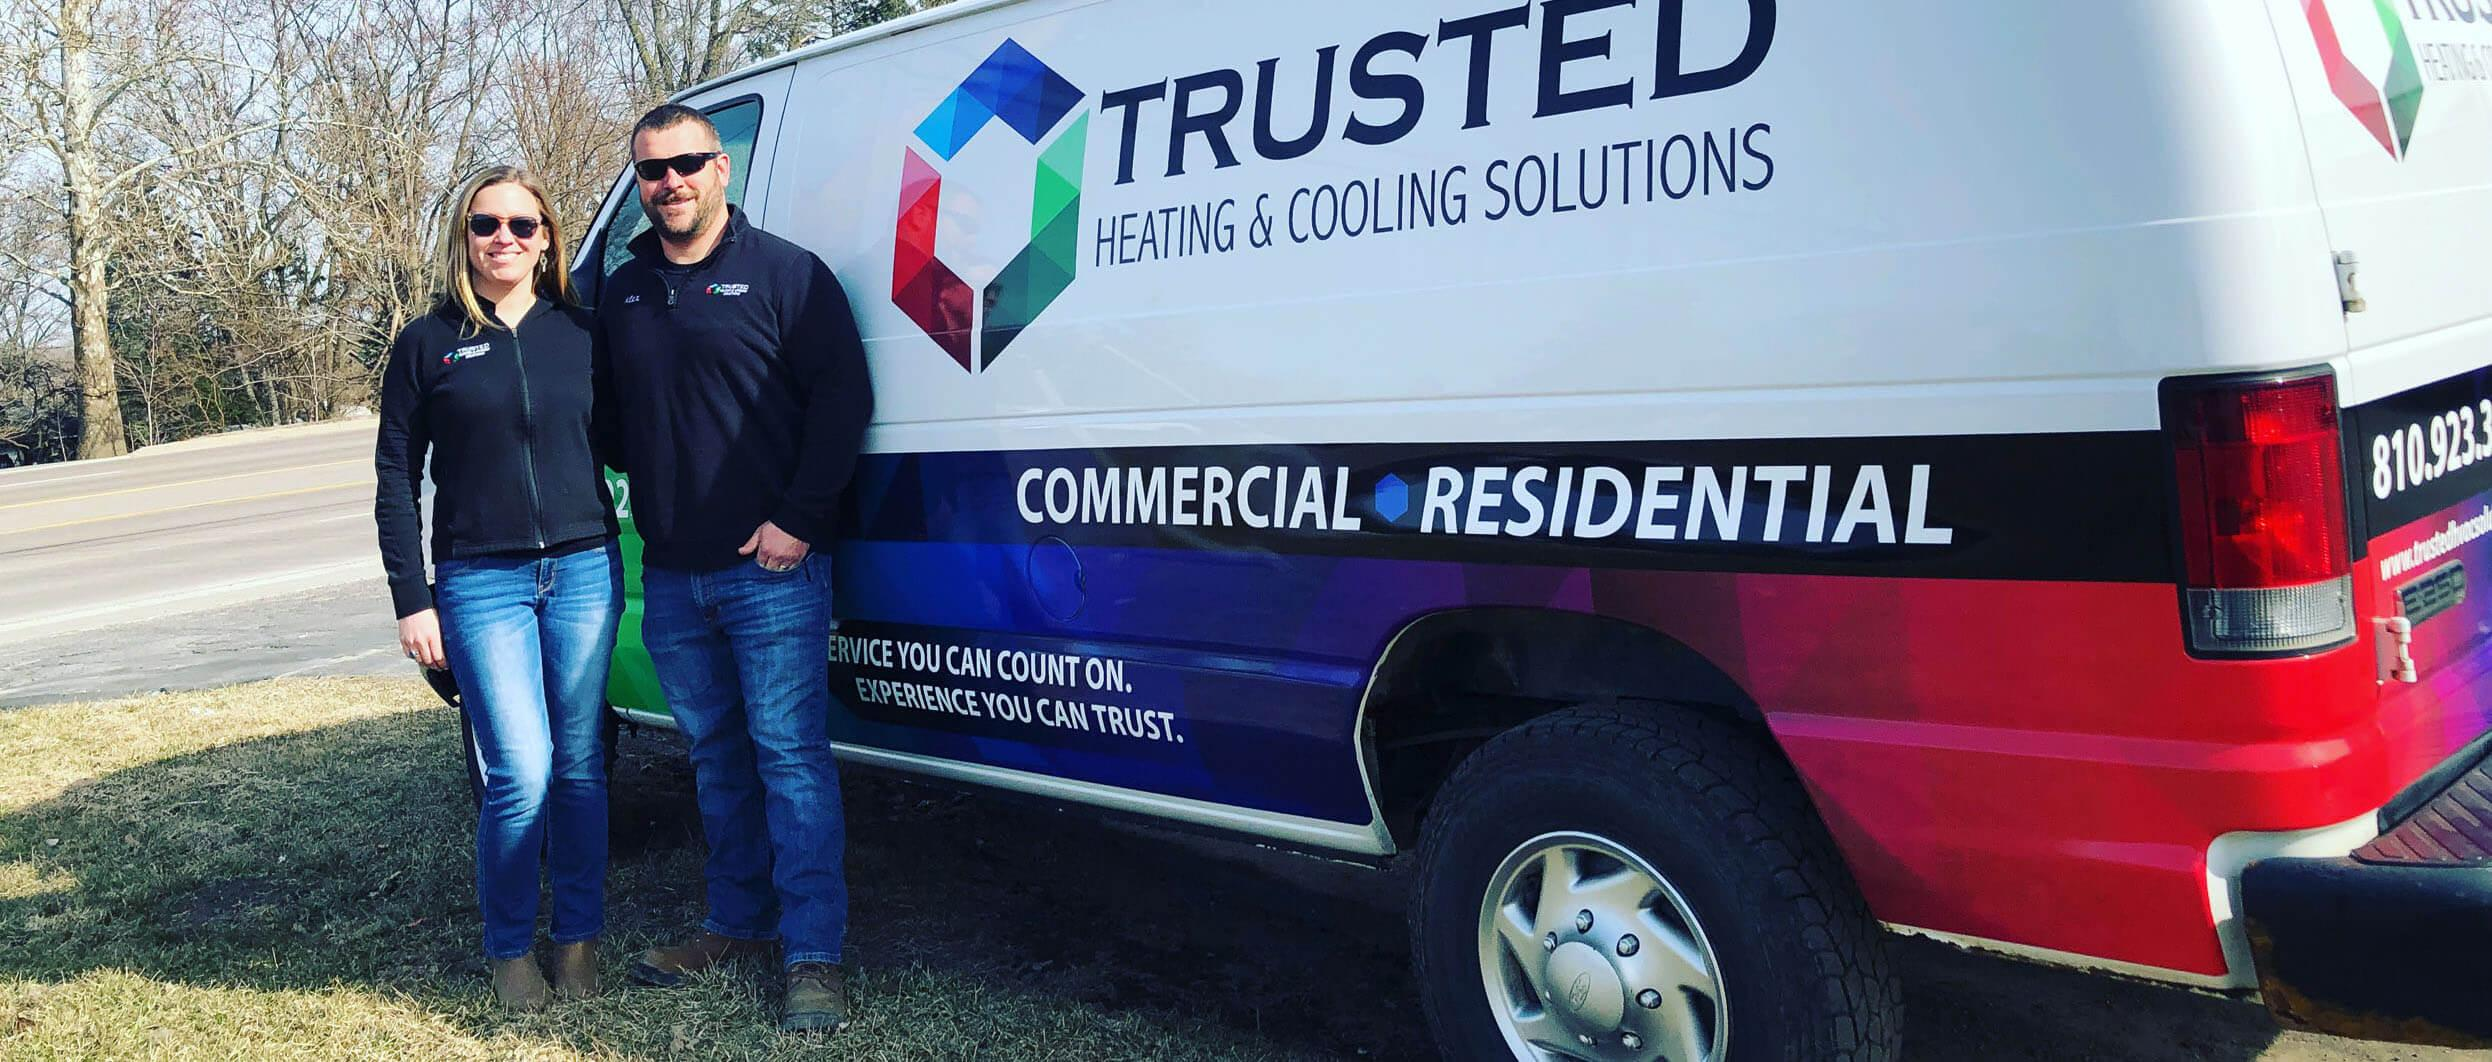 Cooling and AC installation company Brighton, Howell, Livingston County